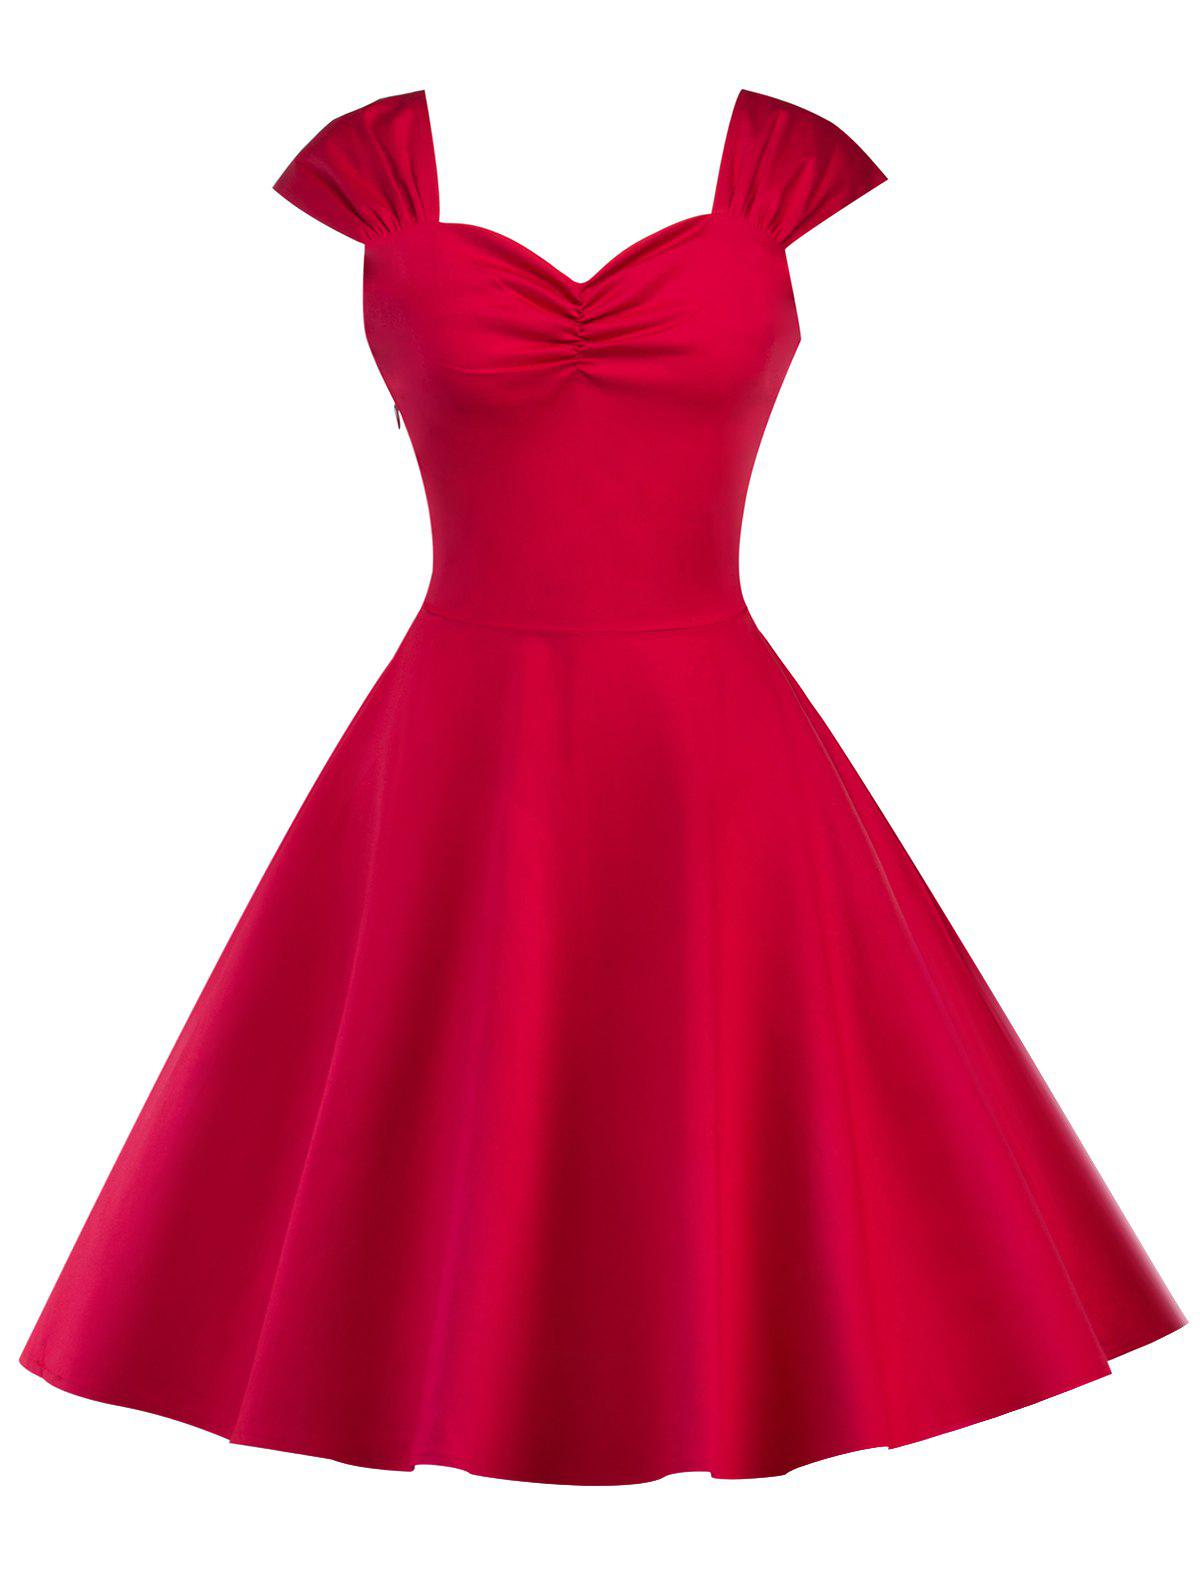 Vintage High Waist Sleeveless Flare Dress - RED M